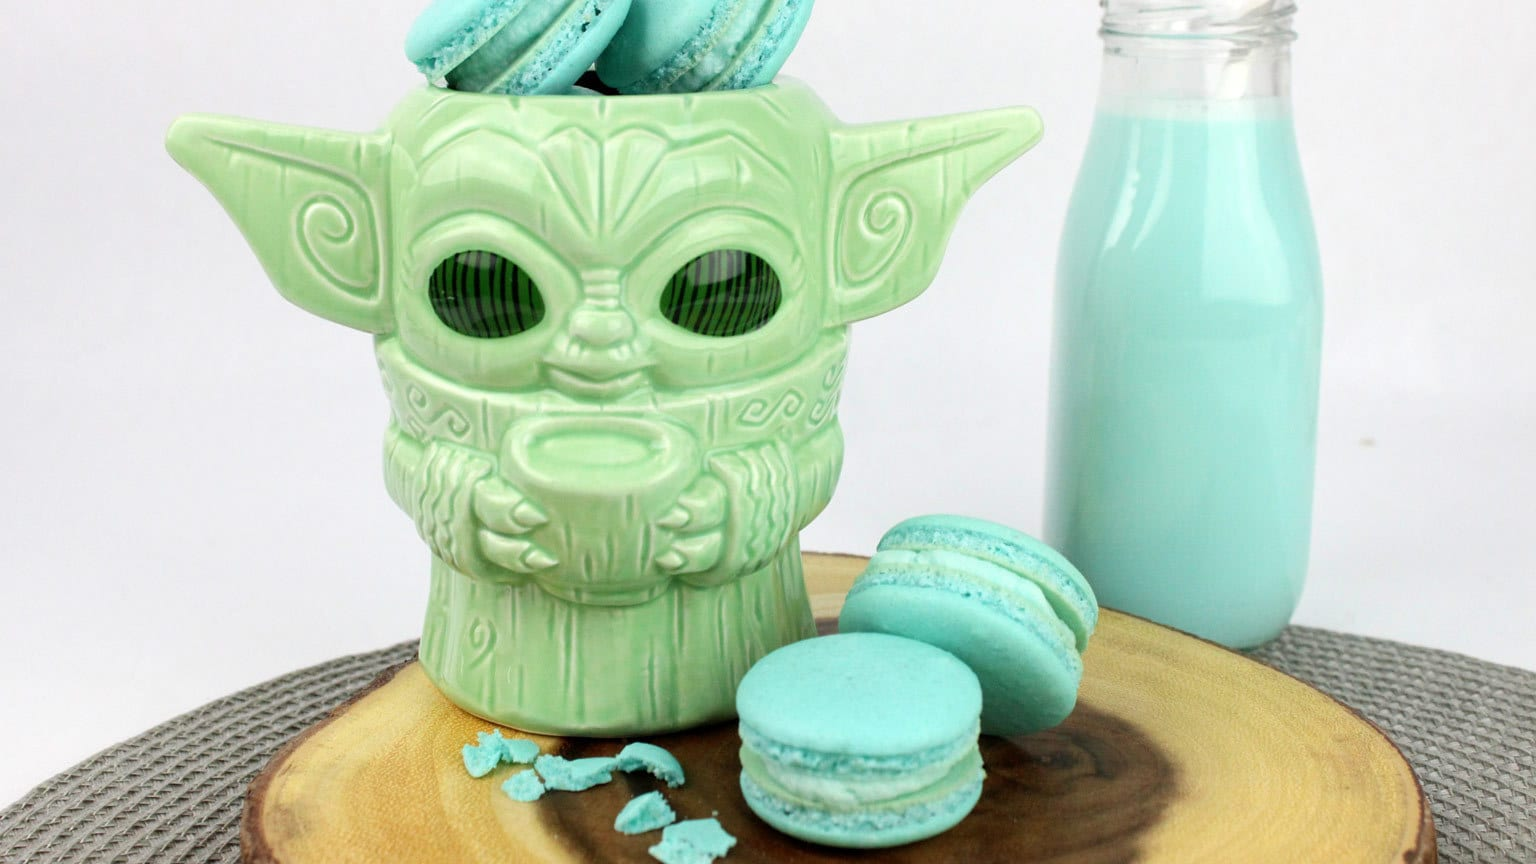 Make Blue Milk Mando Macarons to Share with Everyone